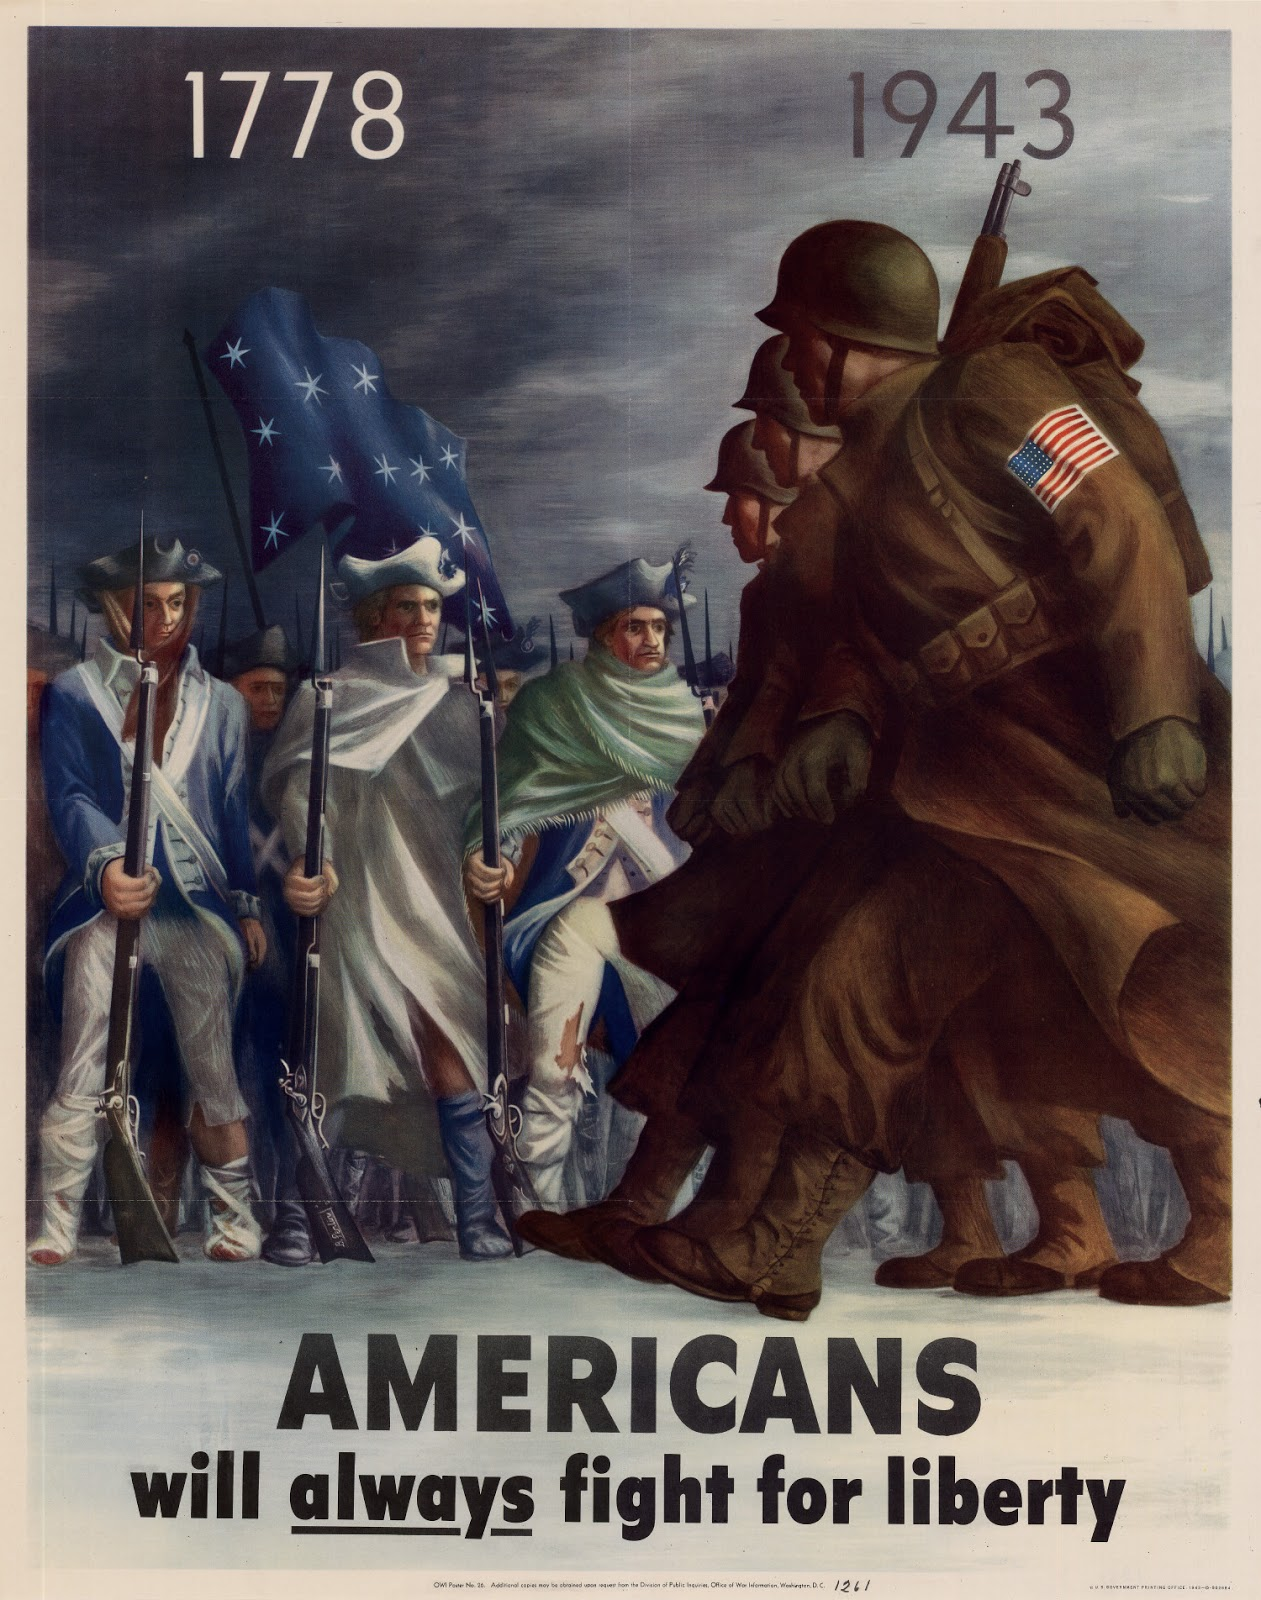 1778-1943-Americans-will-always-fight-for-liberty